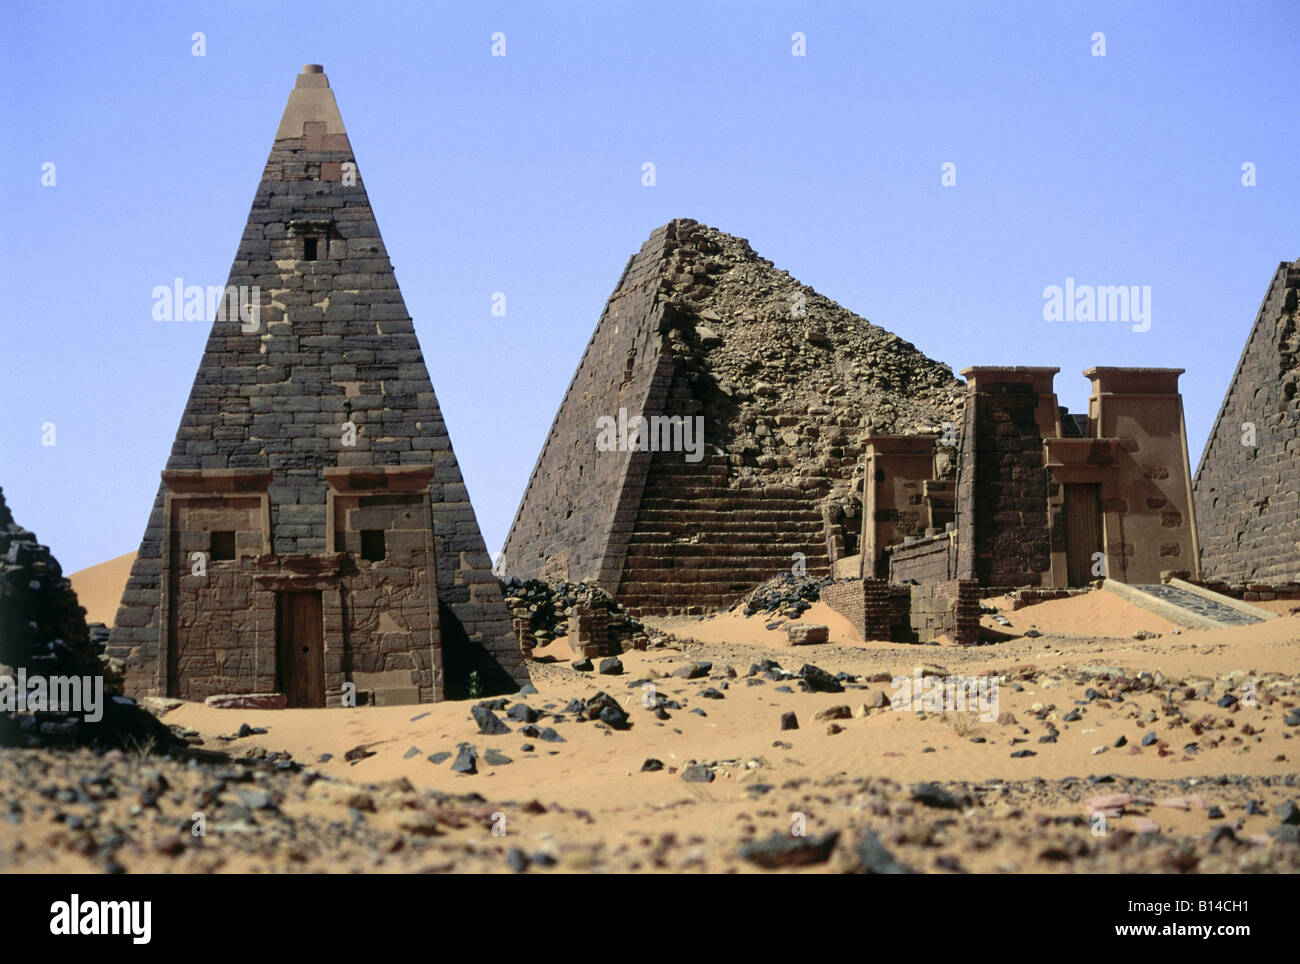 geography / travel, Sudan, Shandi, buildings, pyramids of Meroe, Additional-Rights-Clearance-Info-Not-Available - Stock Image